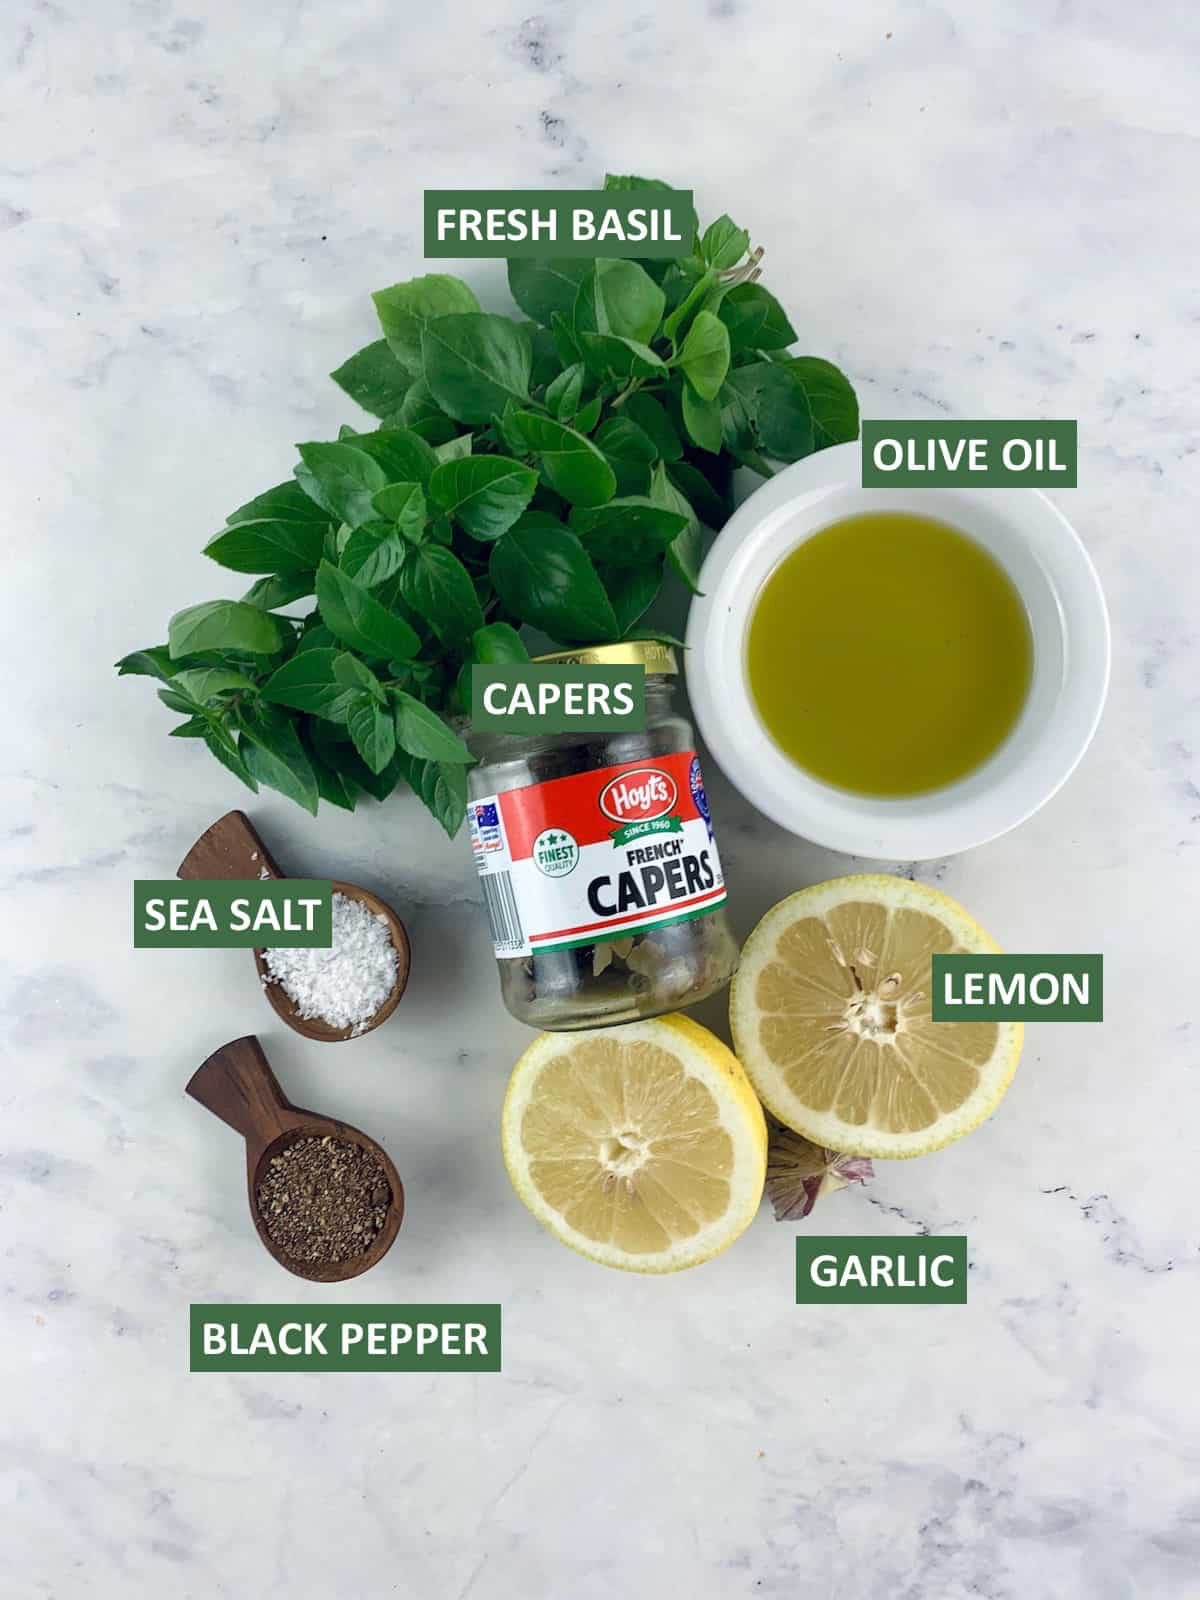 LABELLED INGREDIENTS NEEDED TO MAKE BASIL CAPER DRESSING